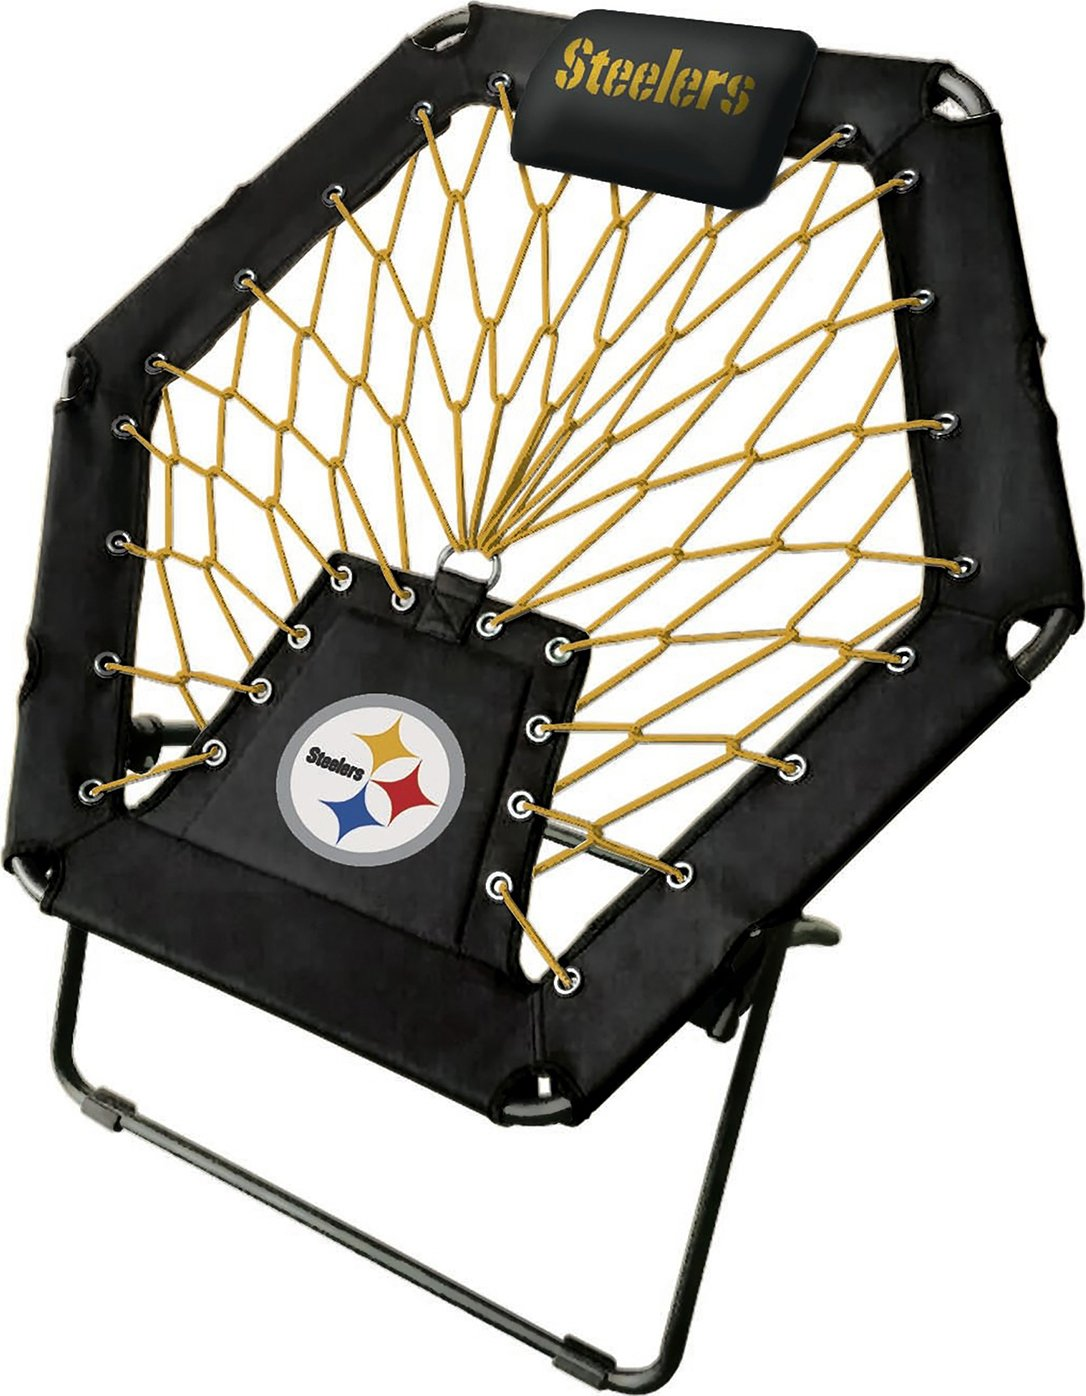 Imperial Officially Licensed NFL Furniture: Premium Bungee Chair, Pittsburgh Steelers by Imperial